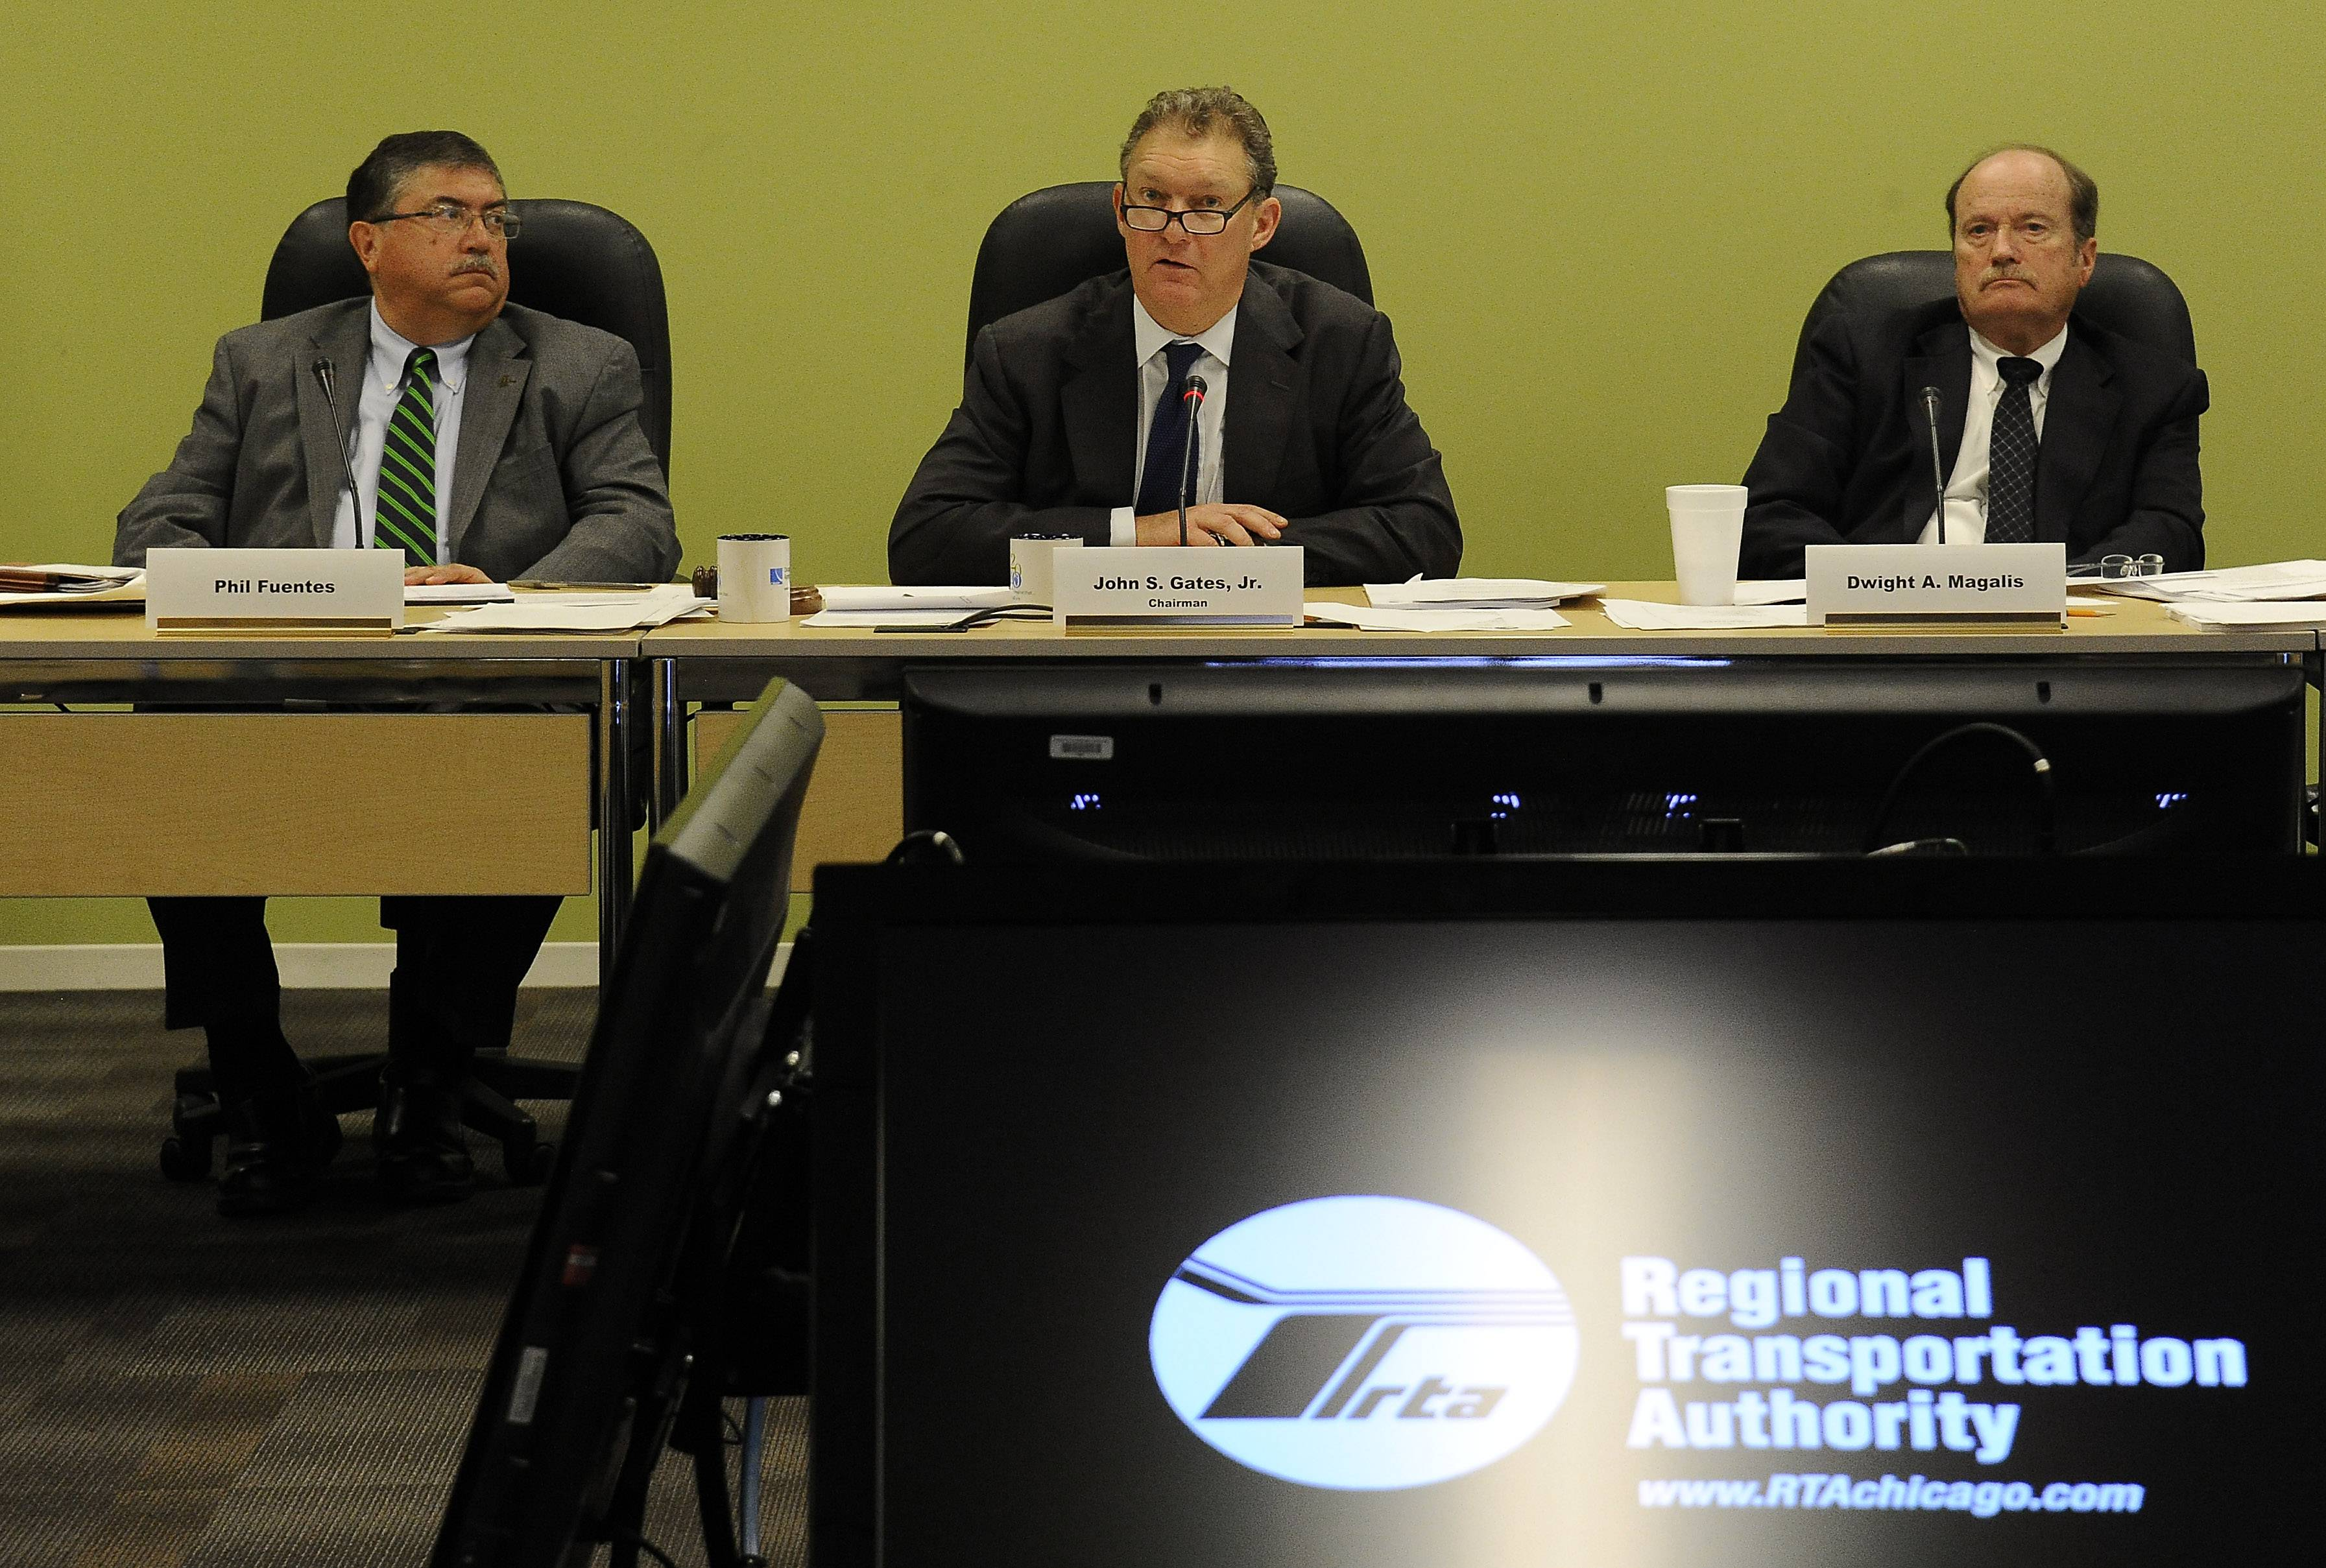 RTA may spend $5 million on transit ads, denies cronyism